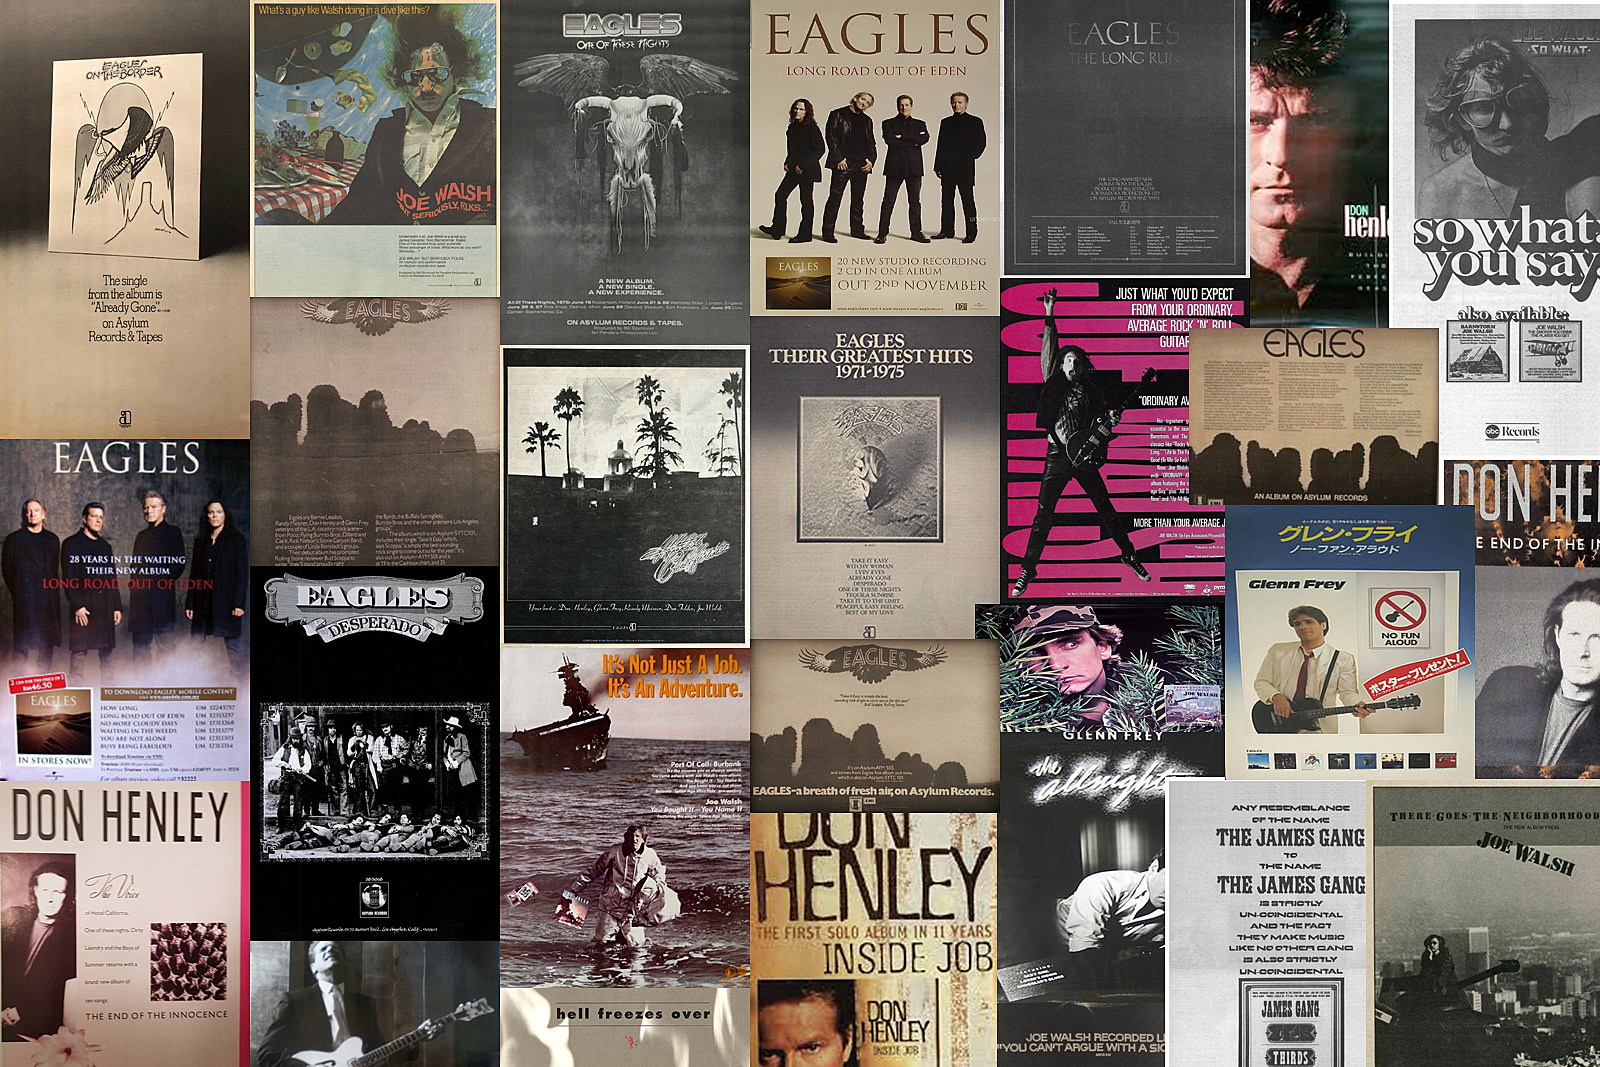 Eagles Magazine Ads Through the Years: 1972-2015